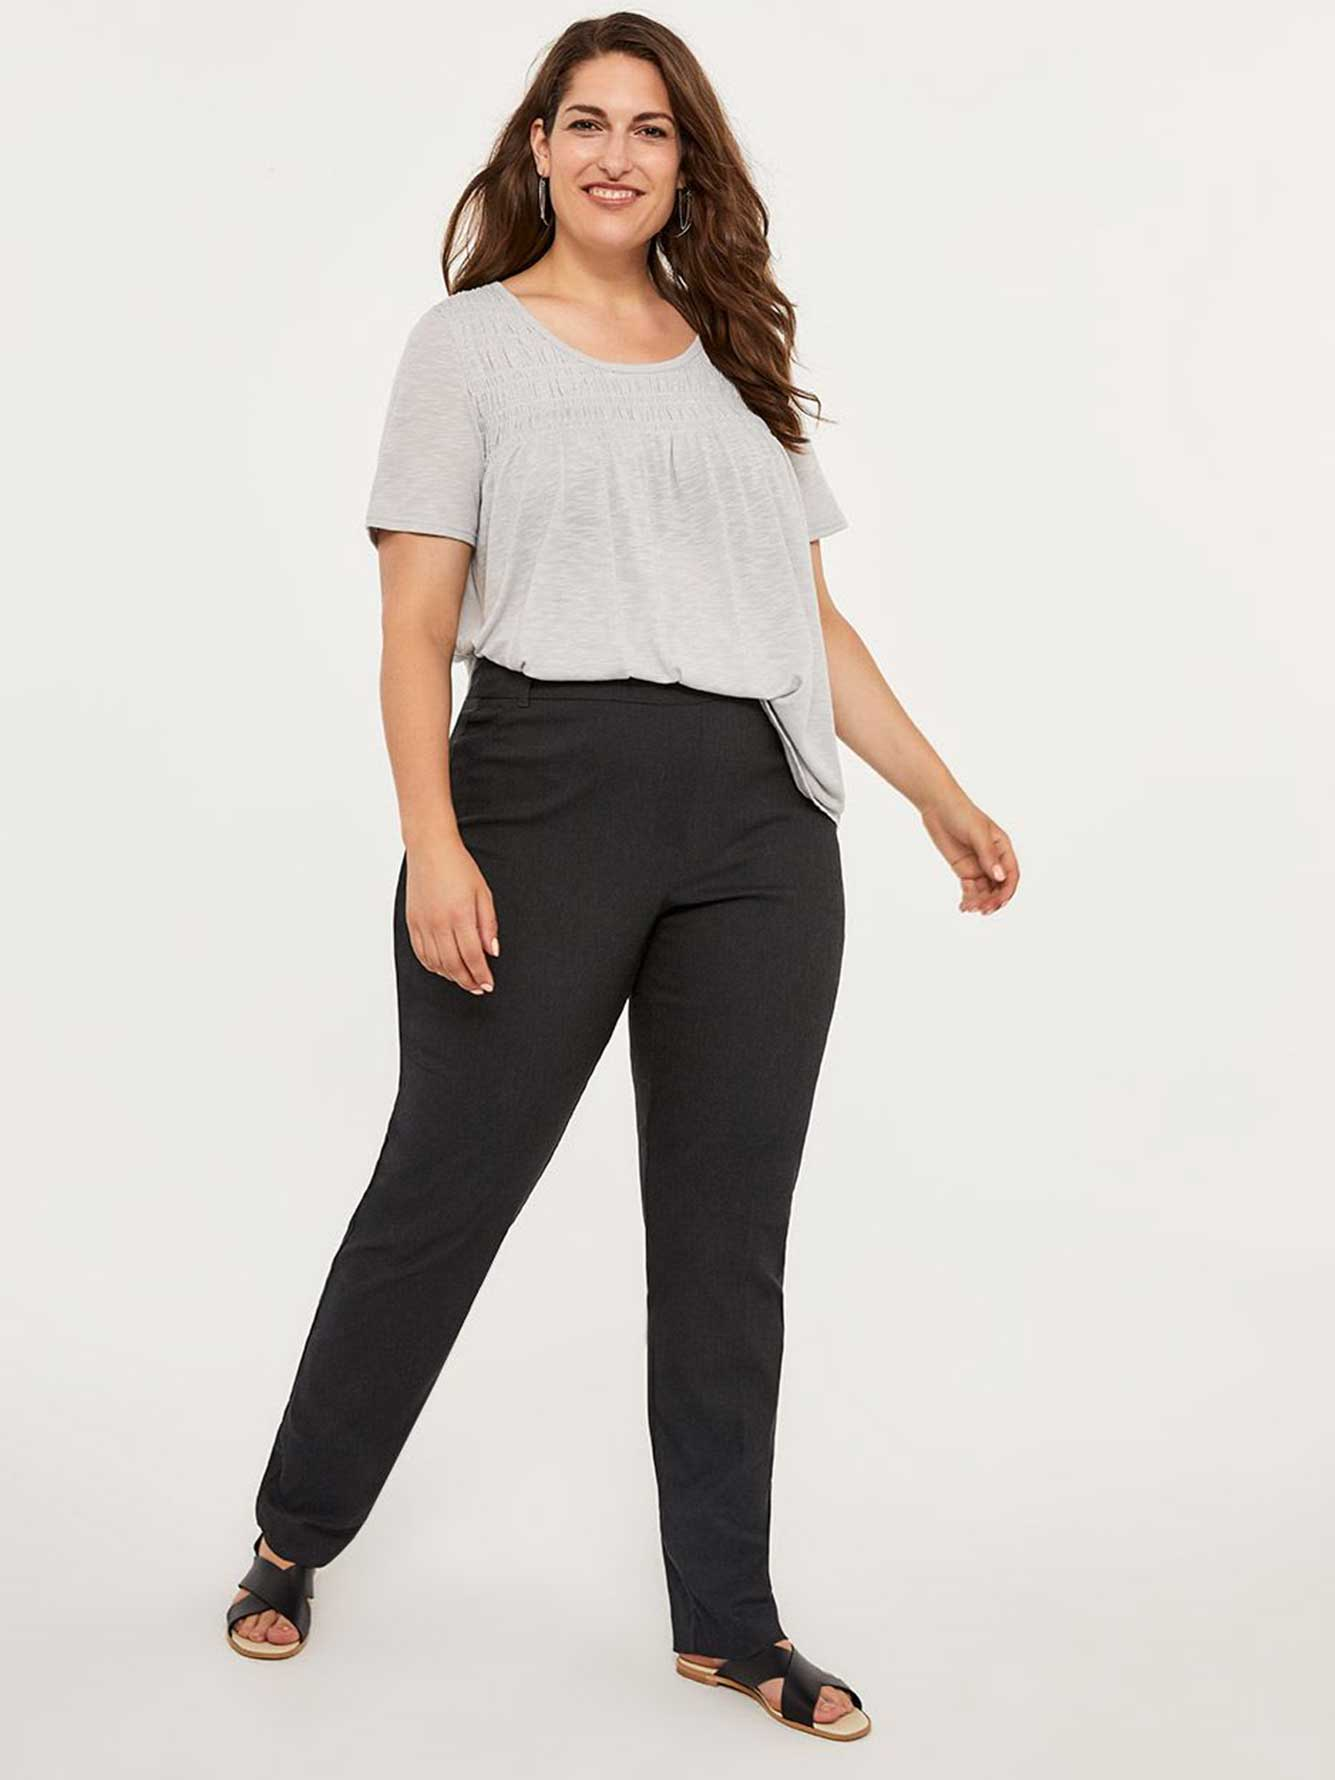 17582cfbc36 Petite Savvy Soft Touch Straight Leg Pant - In Every Story